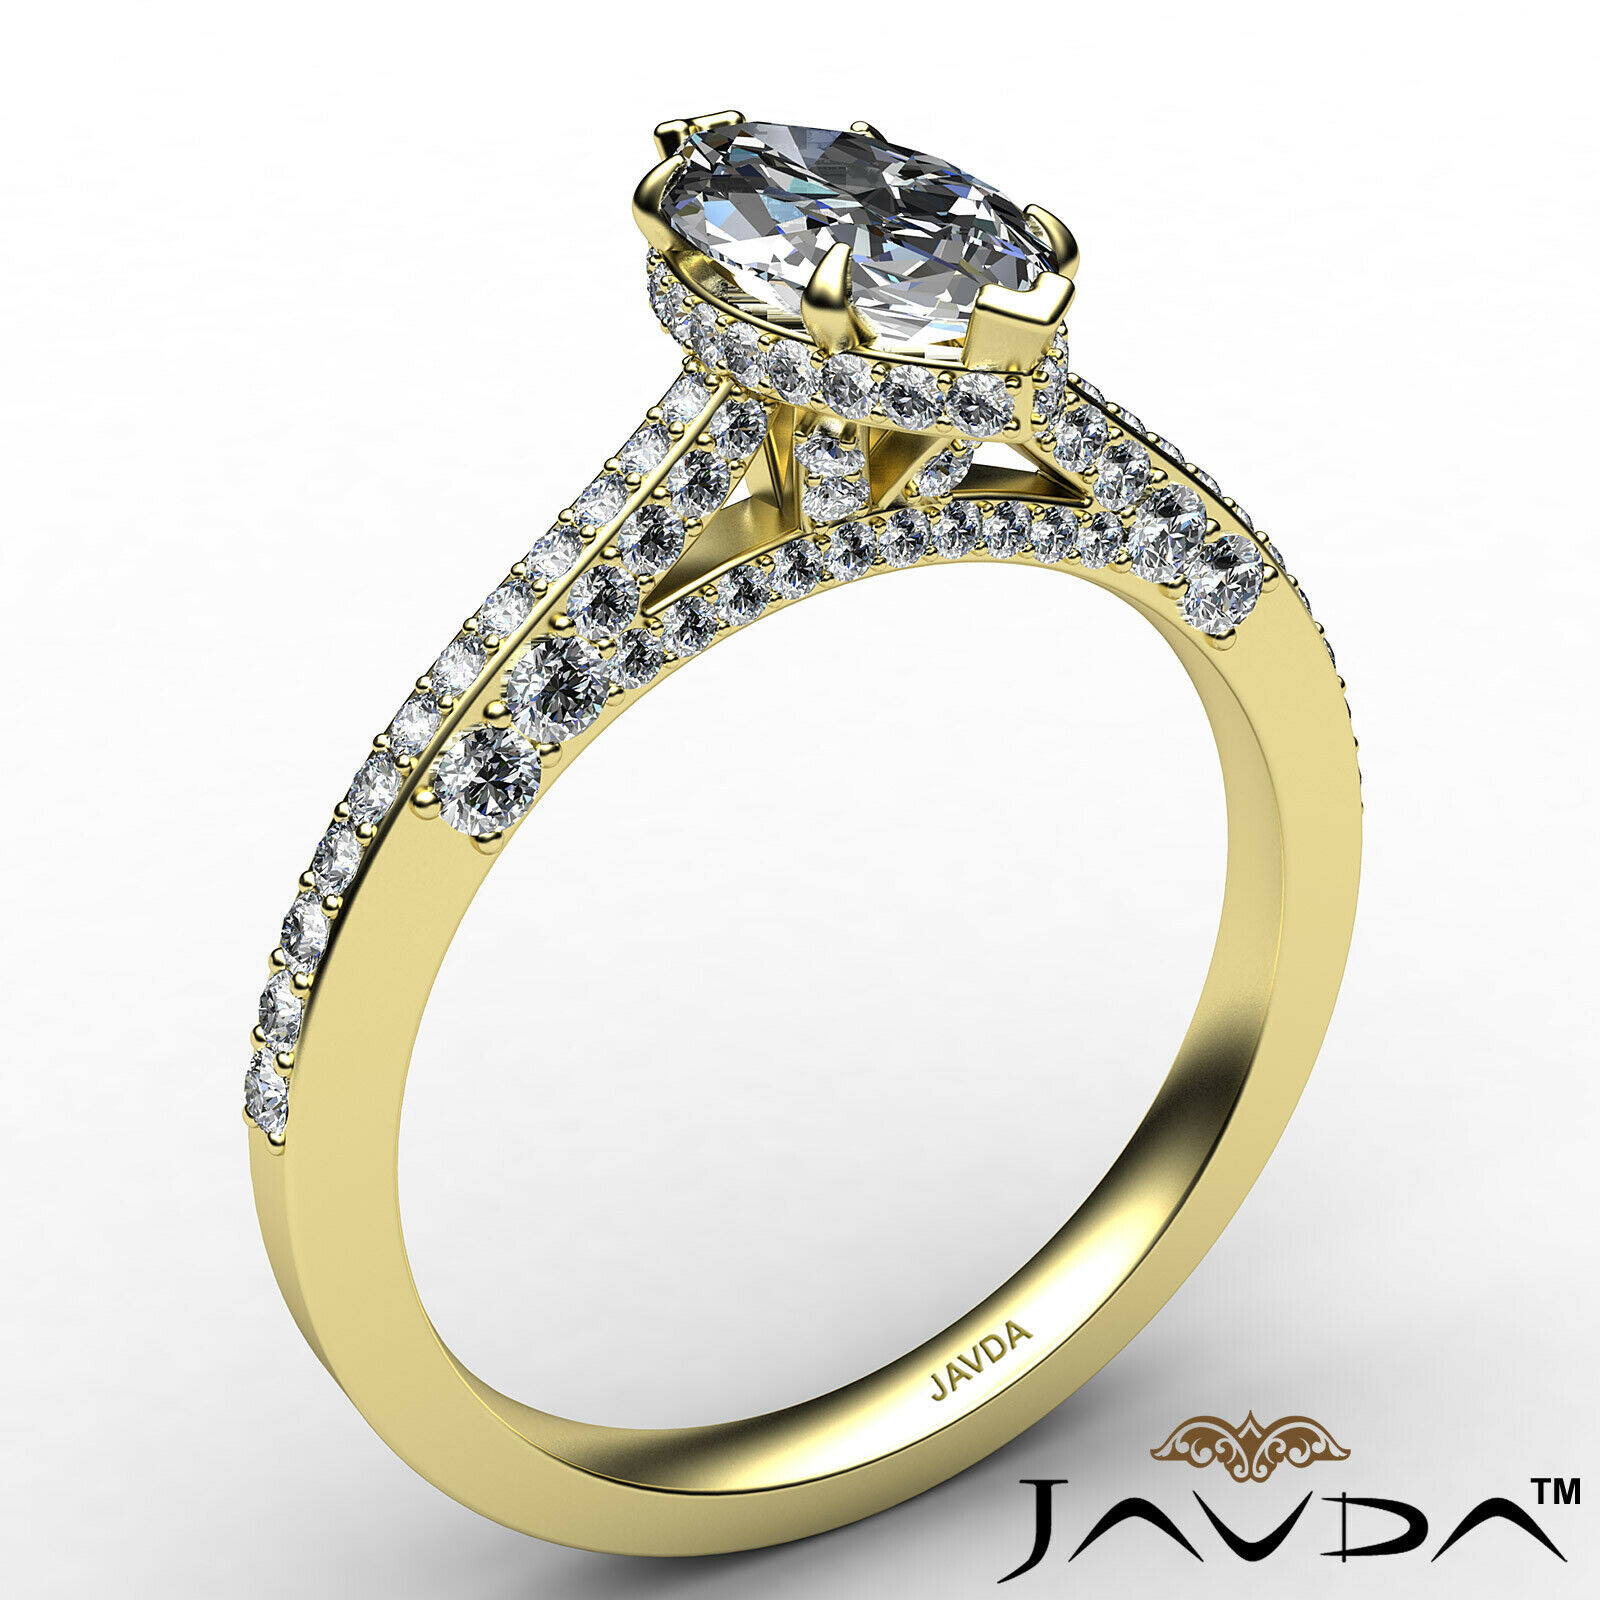 Circa Halo Marquise Diamond Engagement Ring GIA G Color & VVS2 clarity 1.1 ctw 4